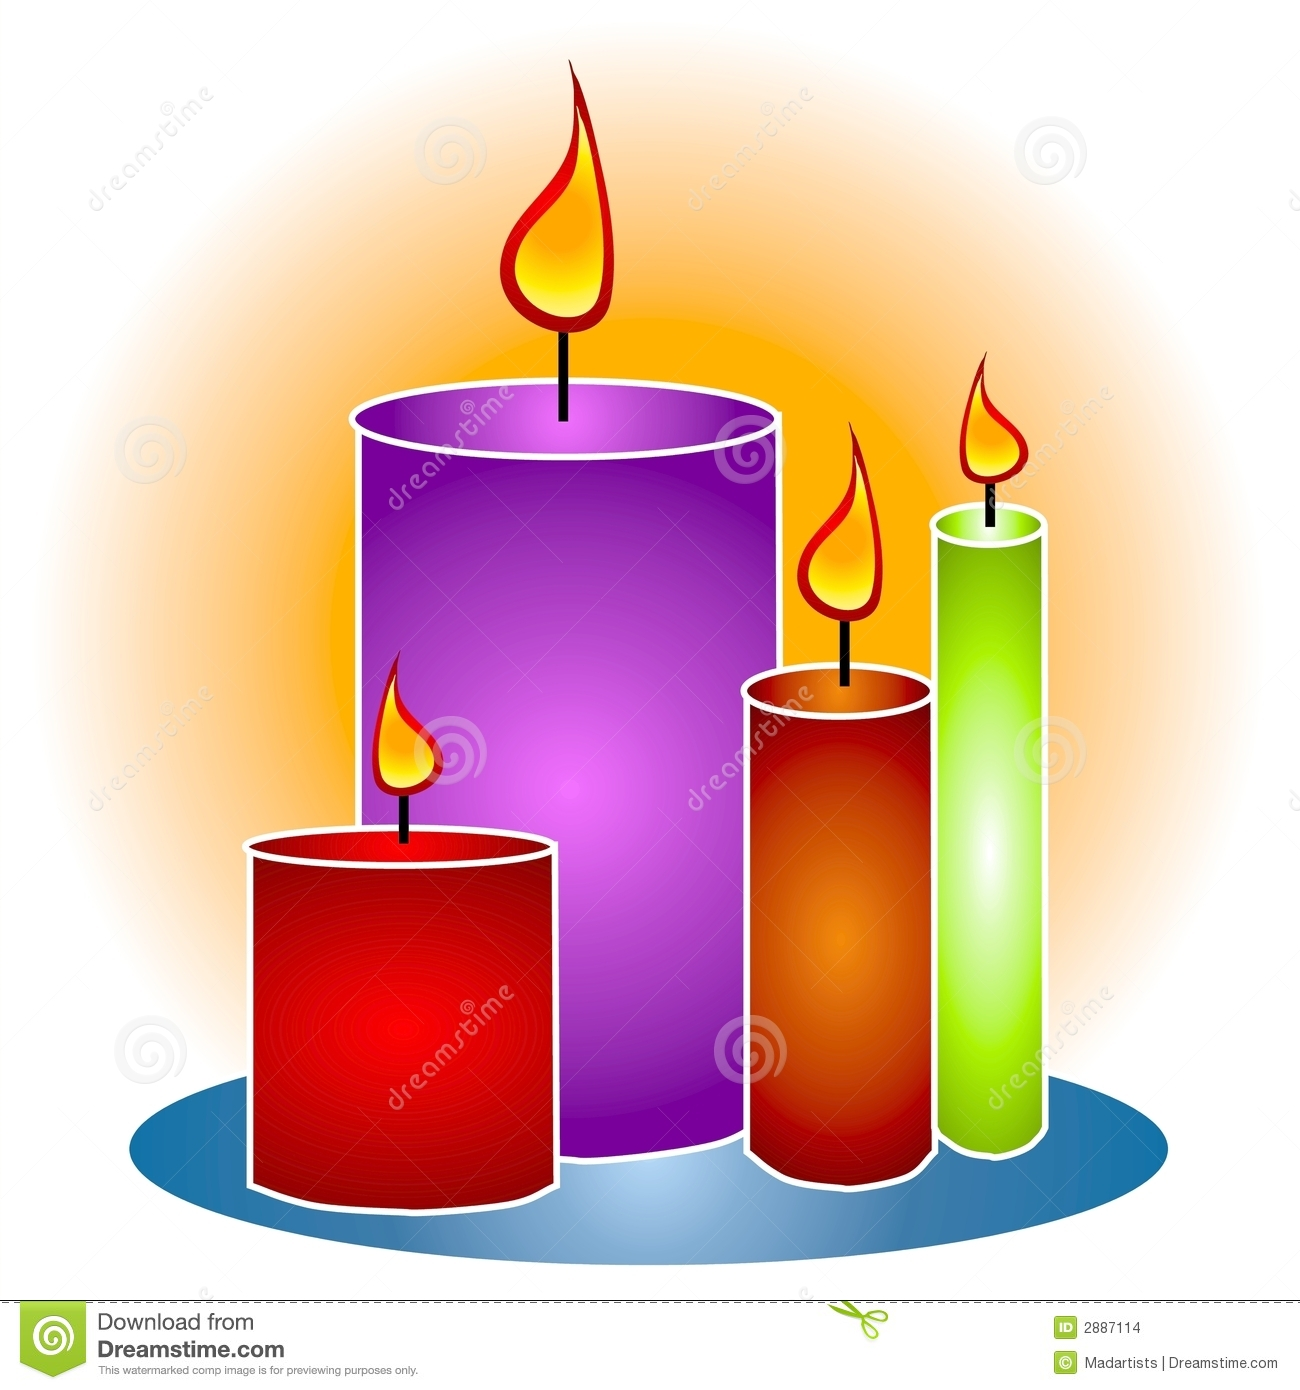 Candle clipart #5, Download drawings